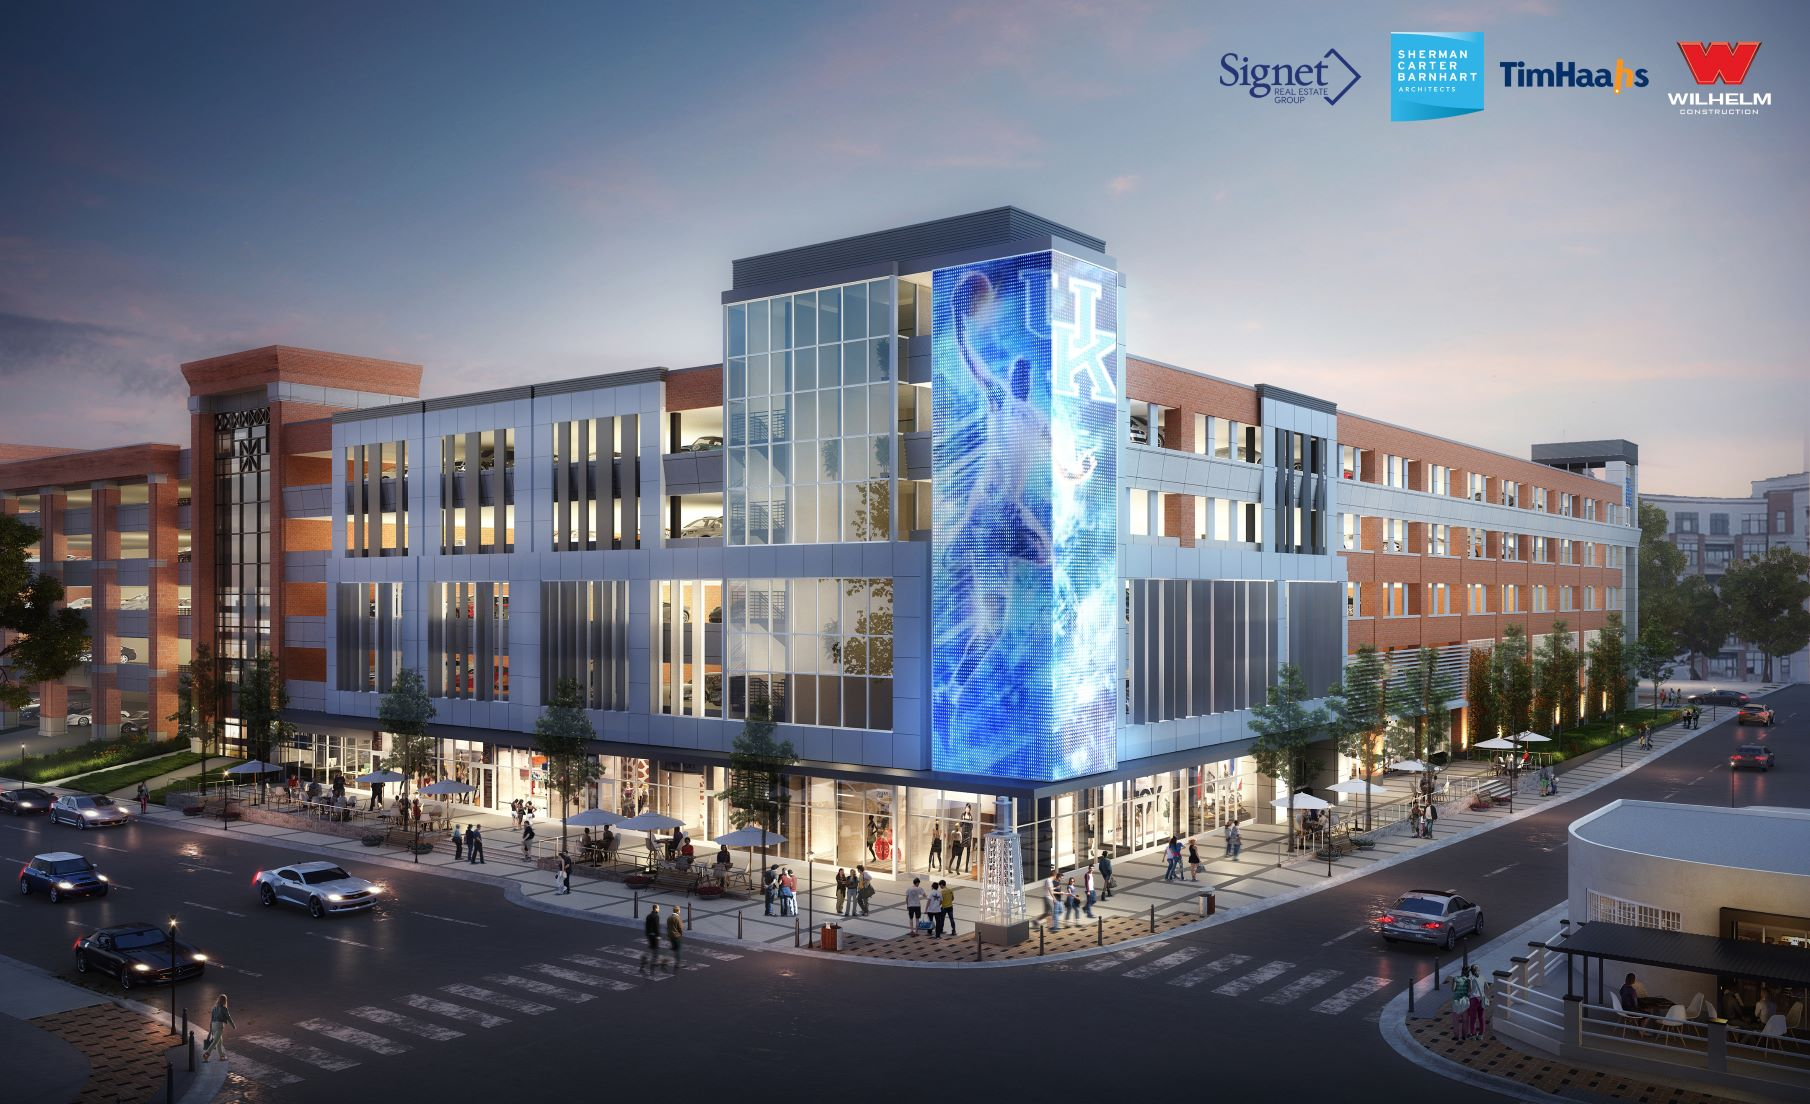 A 50-foot medial wall display will provide a centerpiece for a new retail and innovation complex planned at The University of Kentucky.